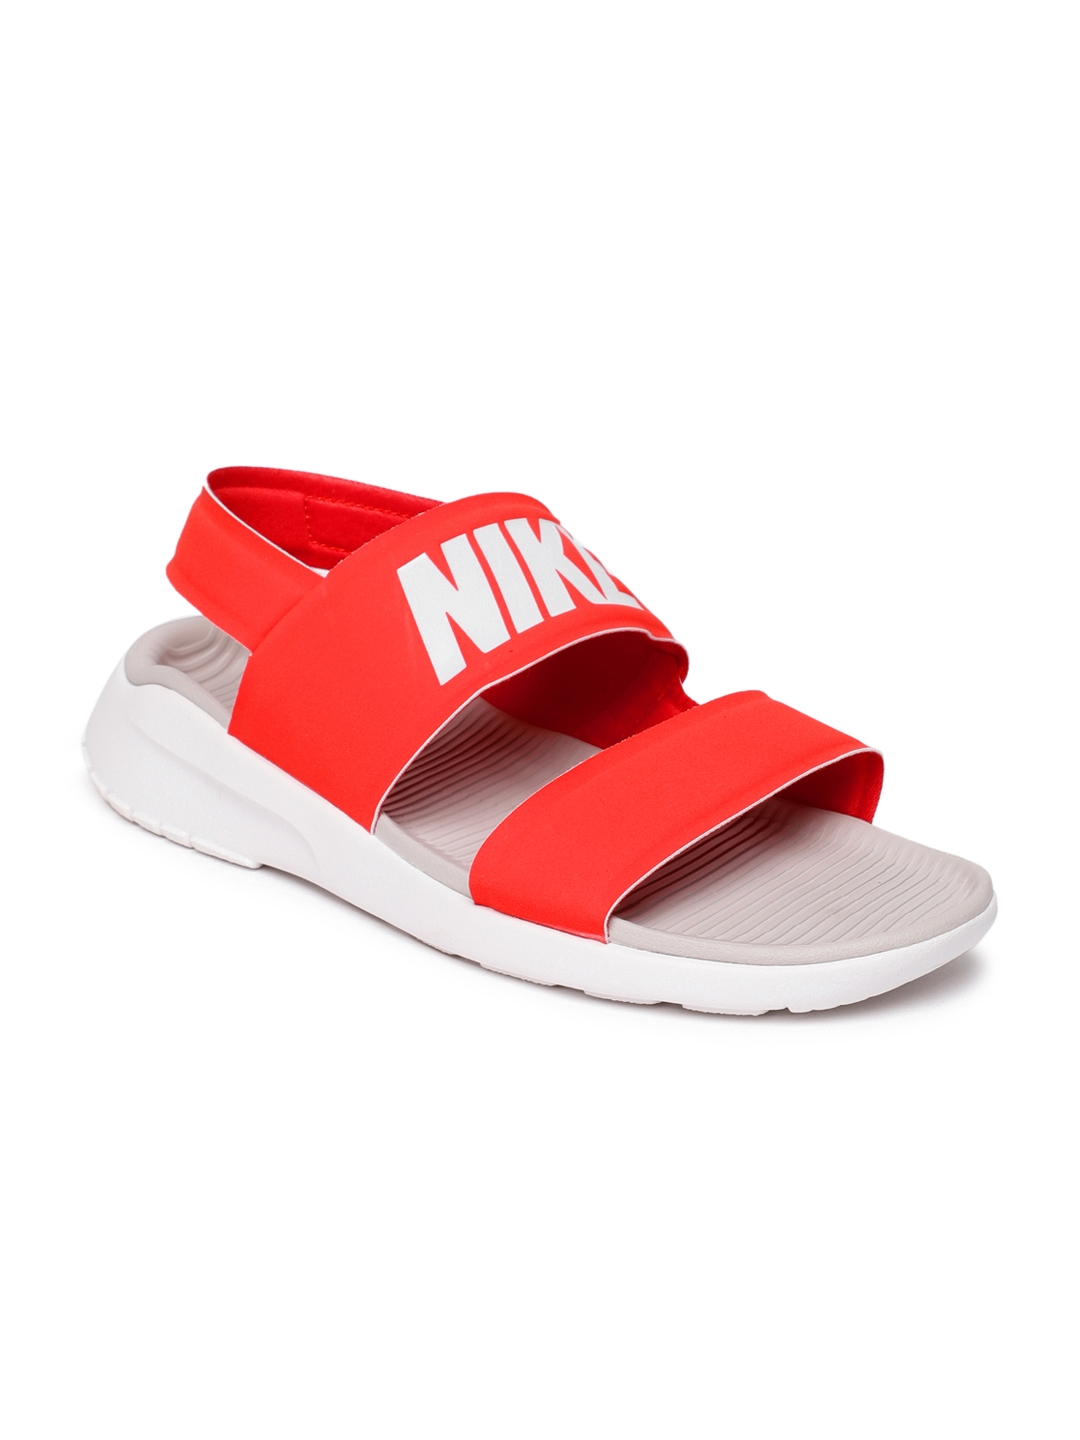 2e6a5fd6e434 Buy Nike Women Red Tanjun Sports Sandals - Sports Sandals for Women ...